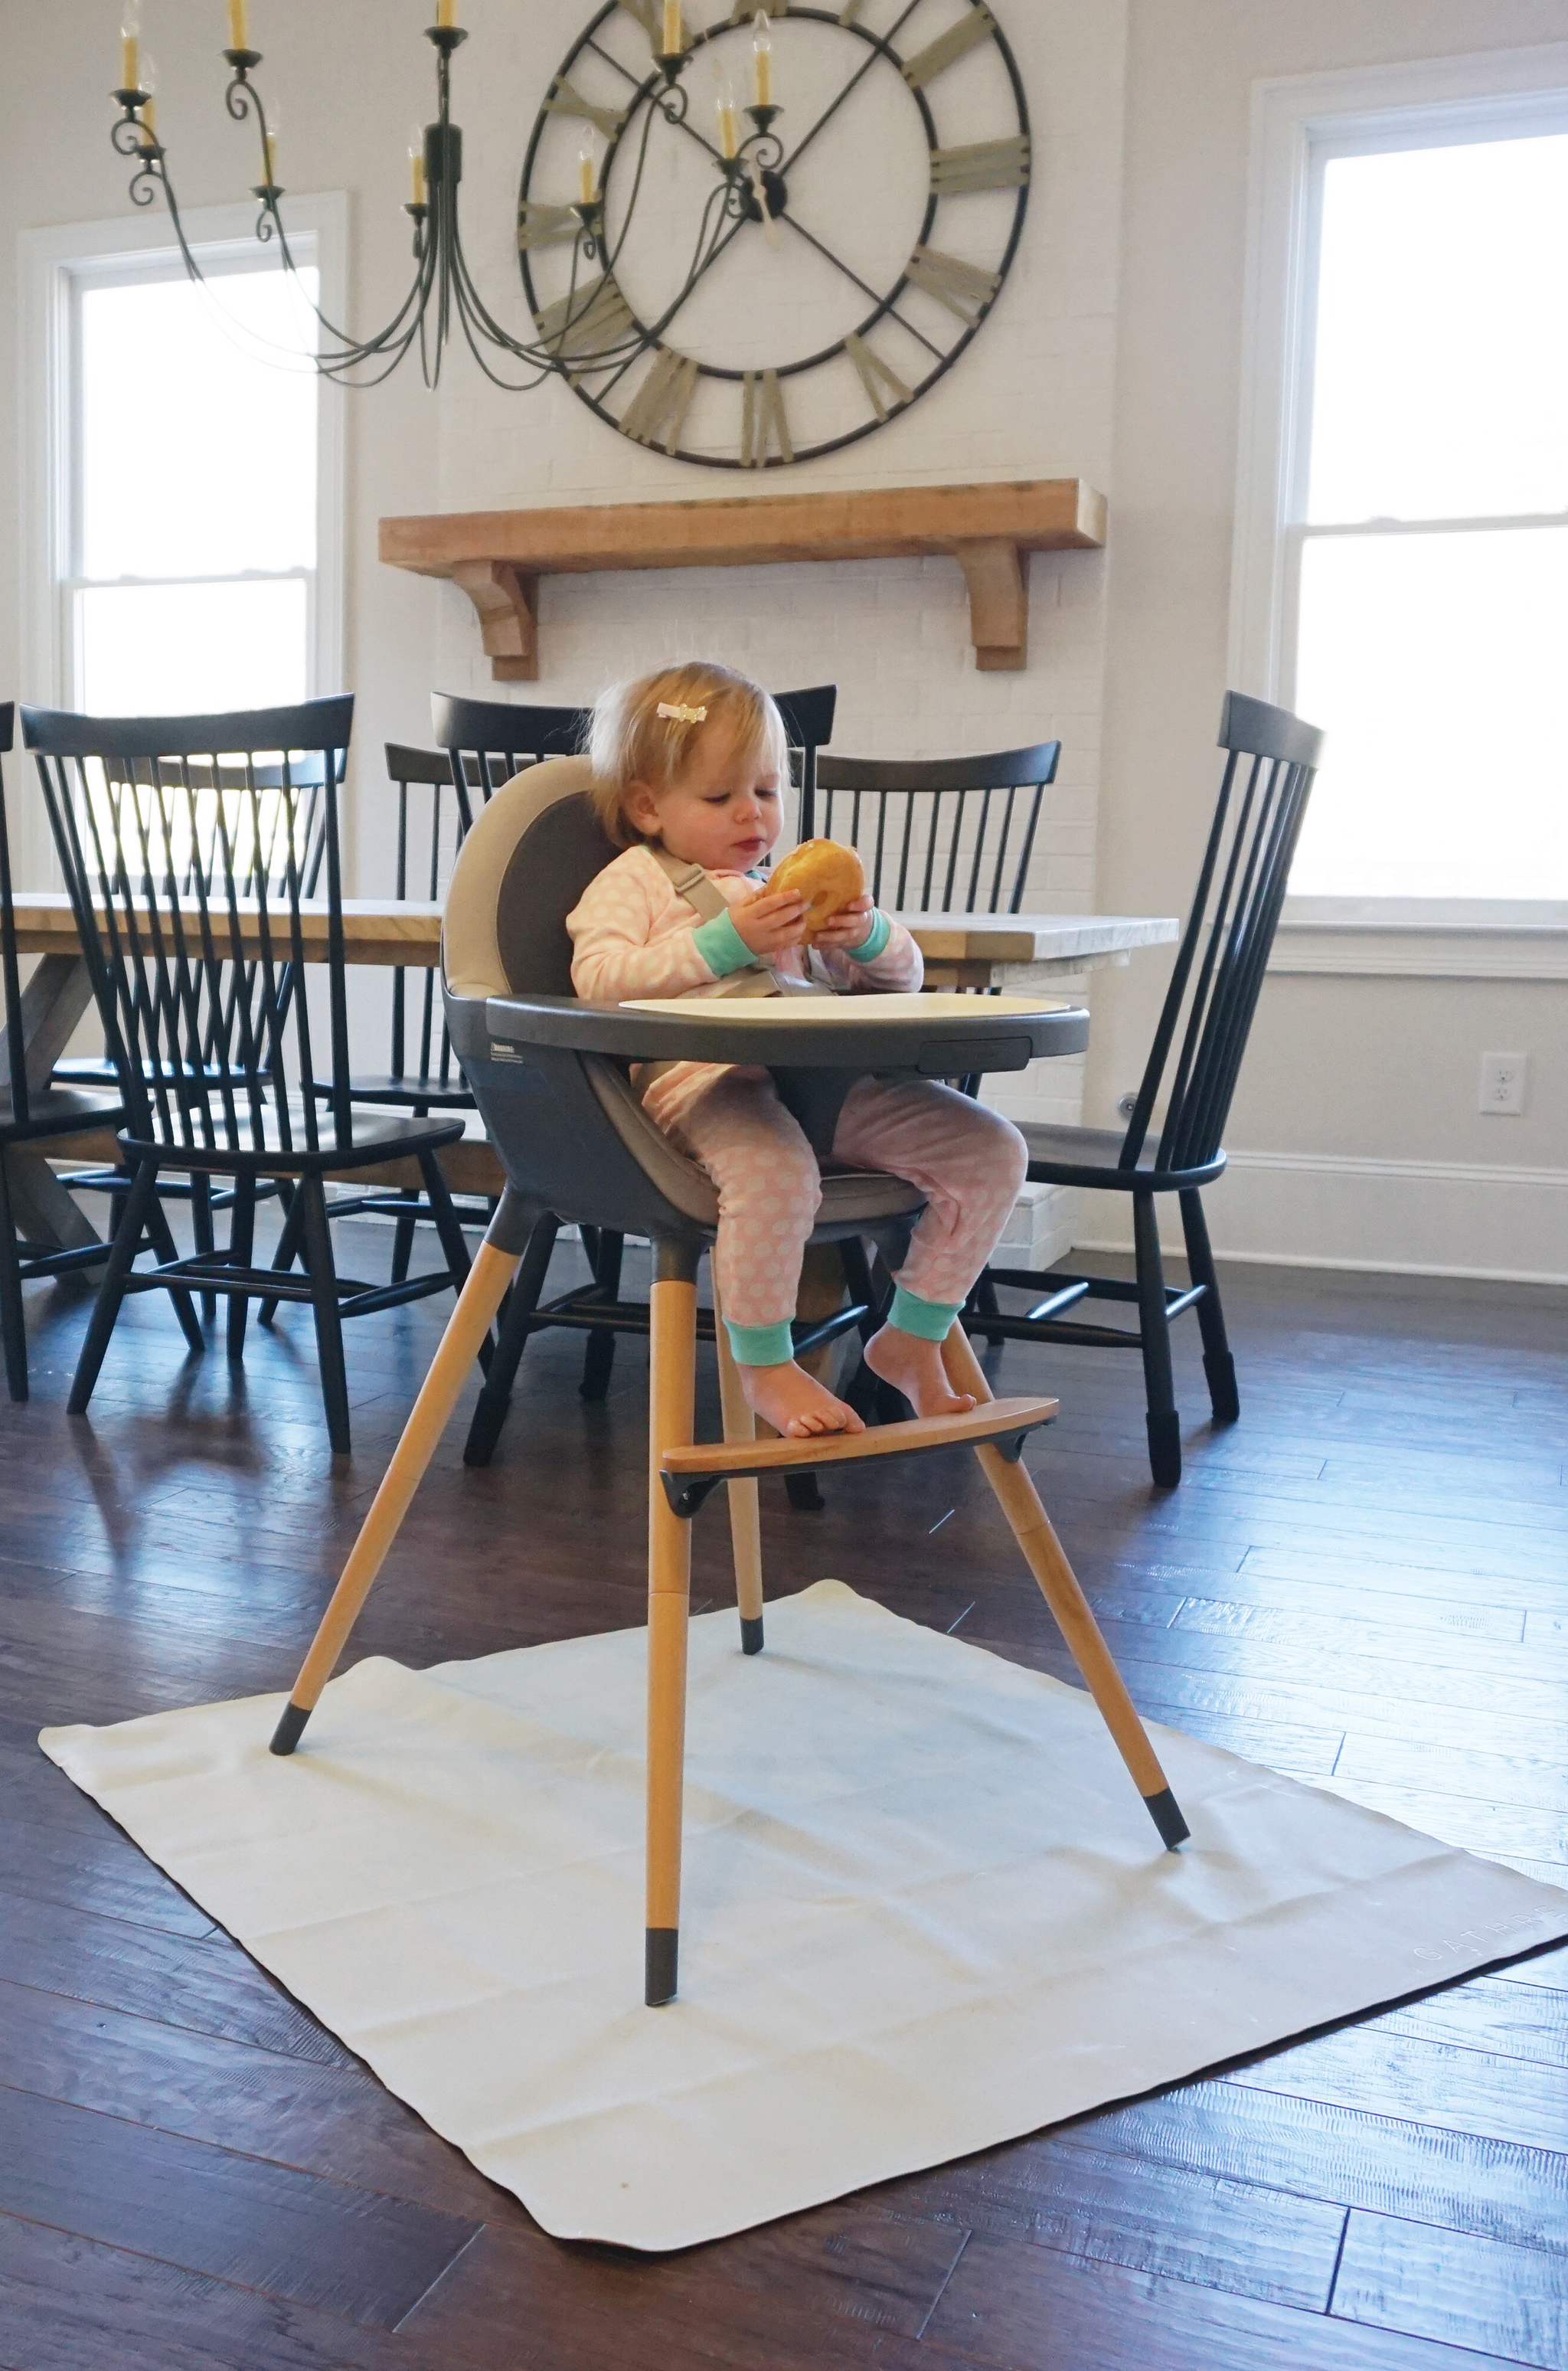 Skip Hop's TUO Convertible High Chair